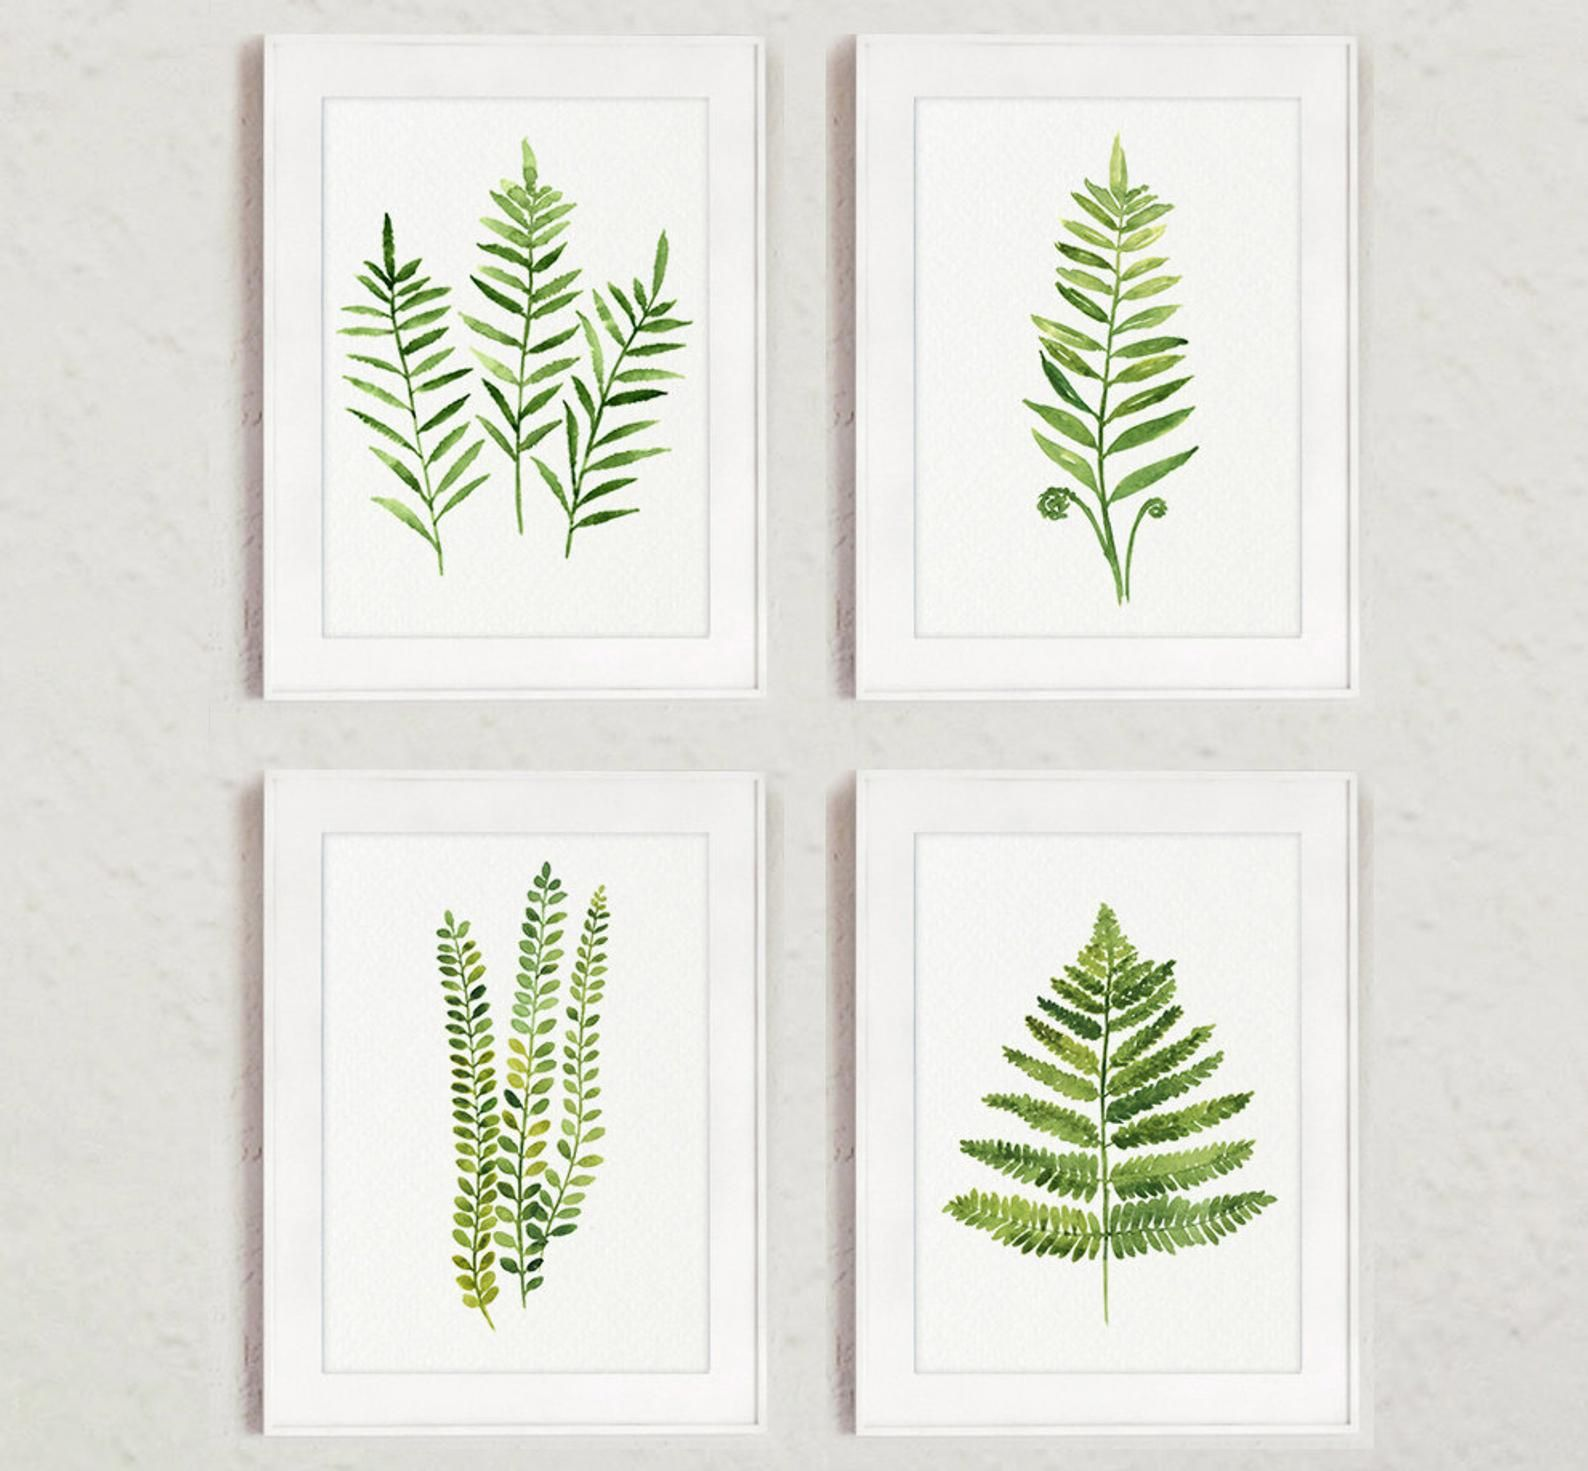 Fern painting green abstract leaf watercolor print set of